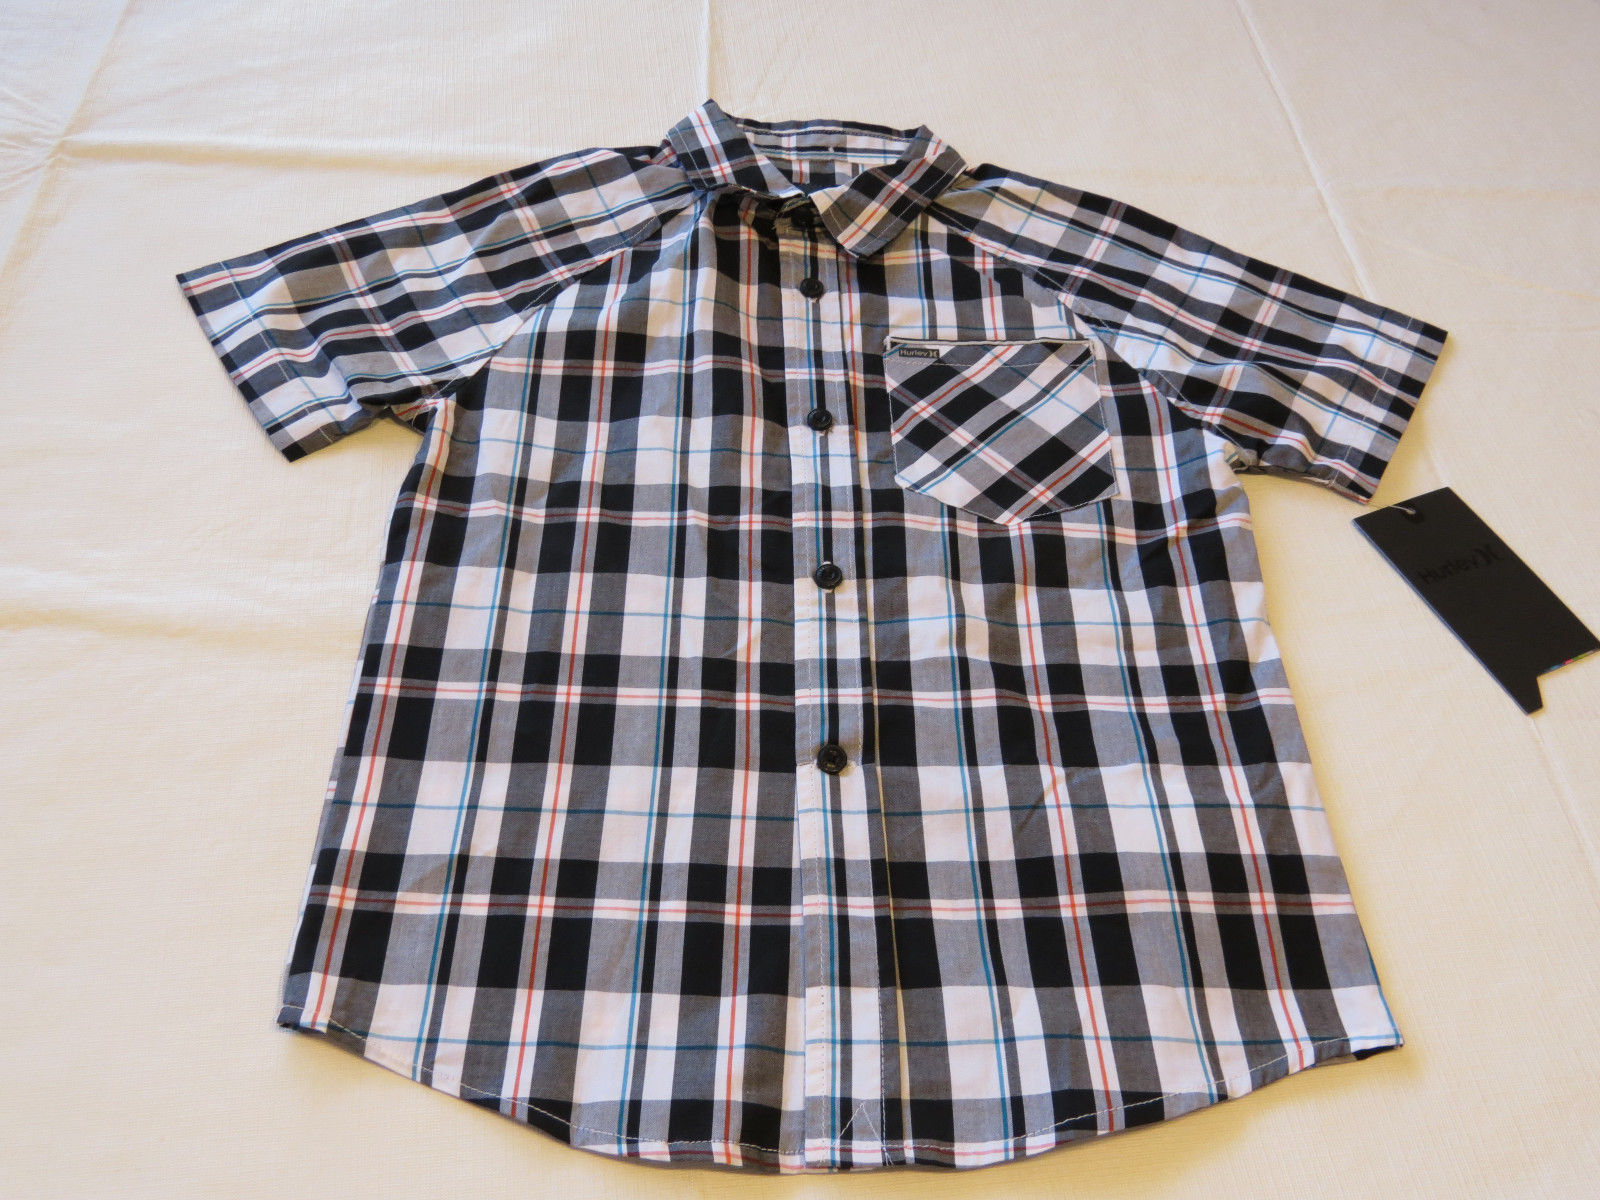 Boy's kids youth Hurley 6 881859 249 black white plaid button up shirt boys NWT